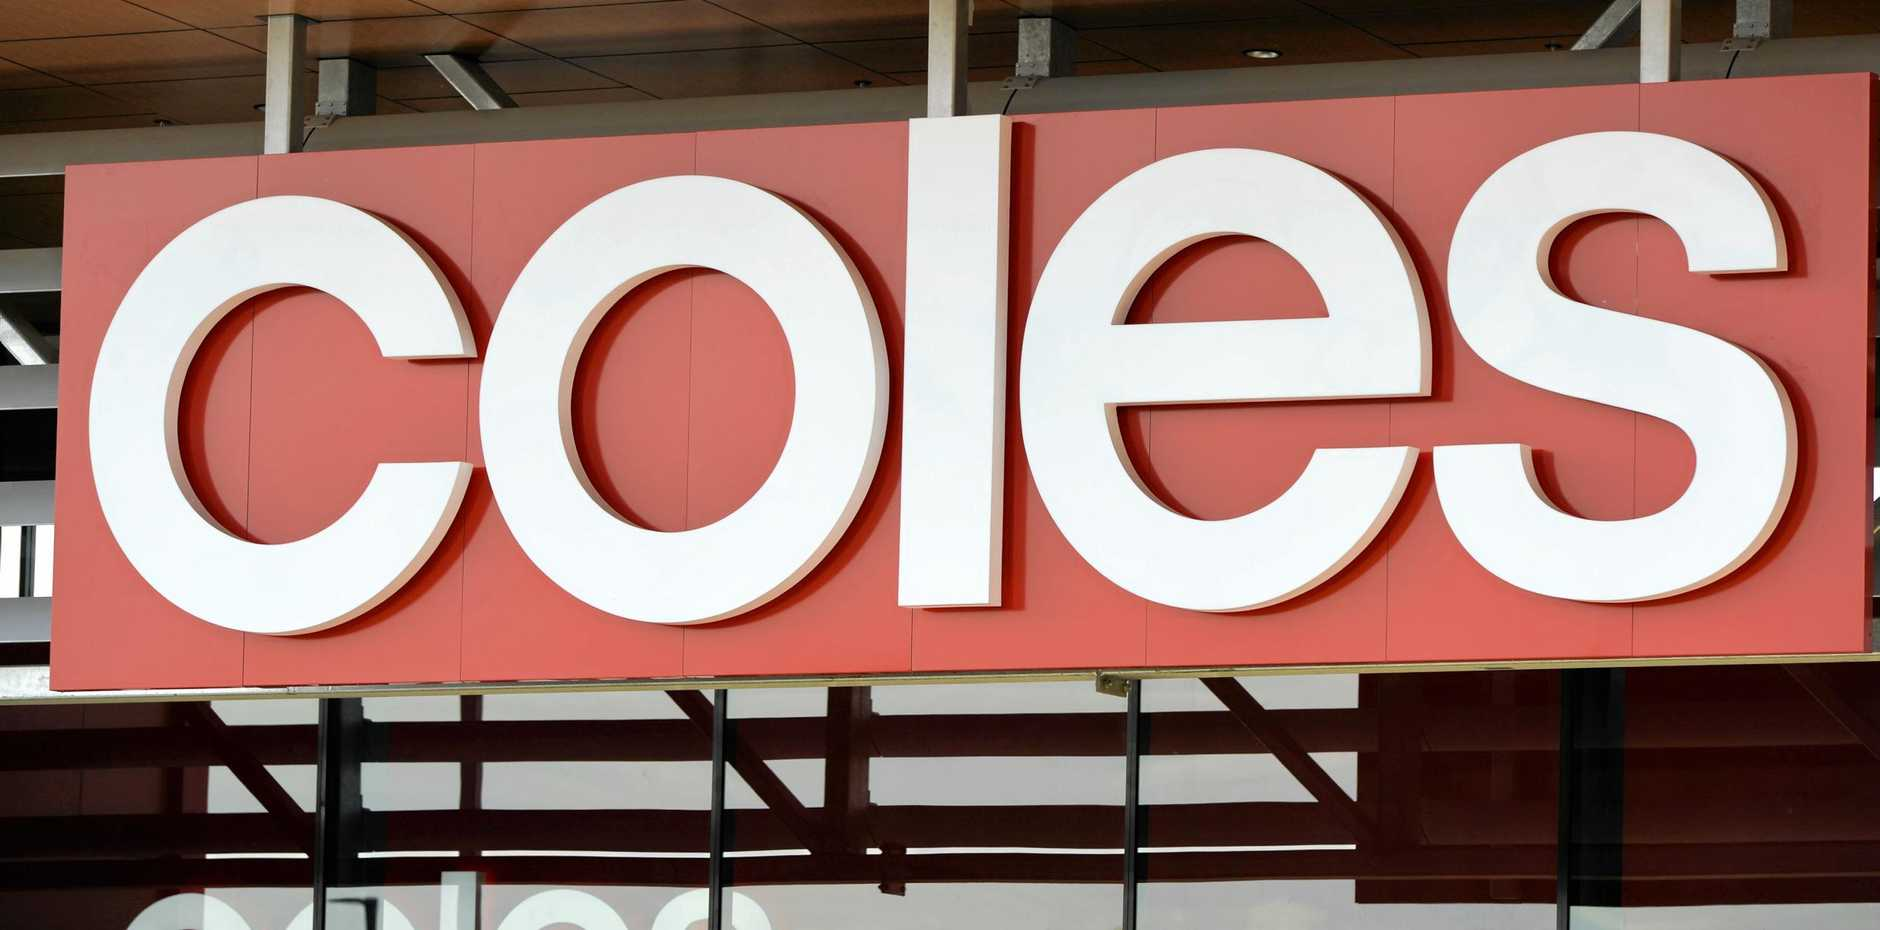 Coles has raised millions of dollars for those in need.